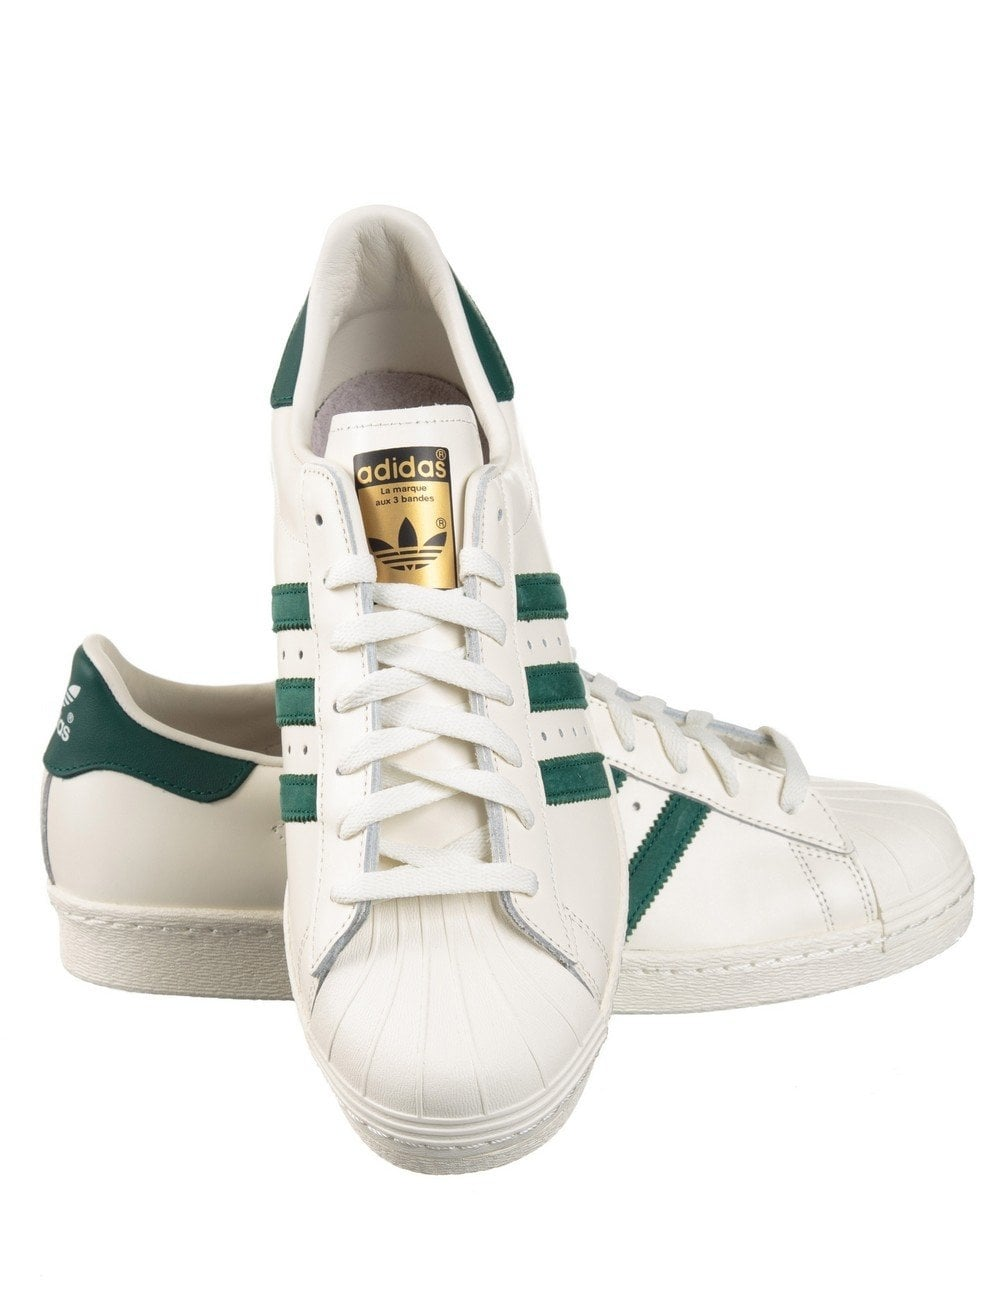 nrxnn Adidas Superstar White And Green greenspaceplanting.co.uk